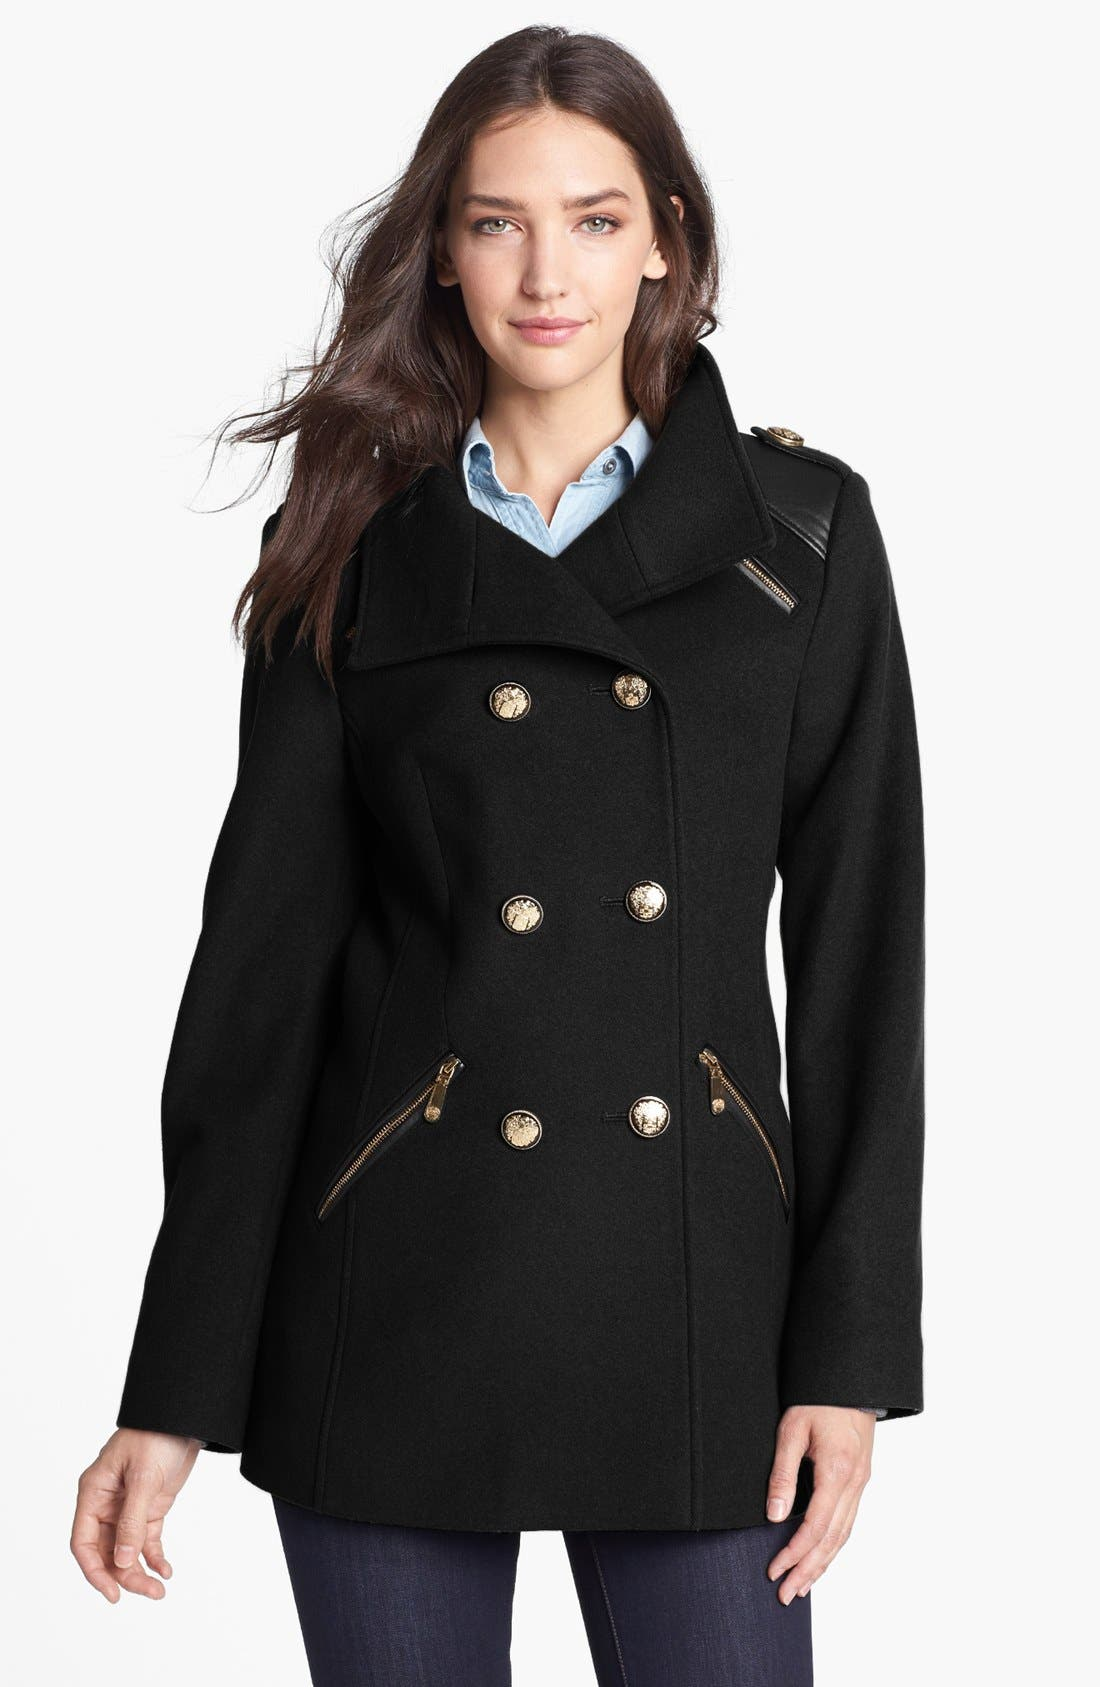 Main Image - Vince Camuto Wool Blend Military Peacoat (Petite)